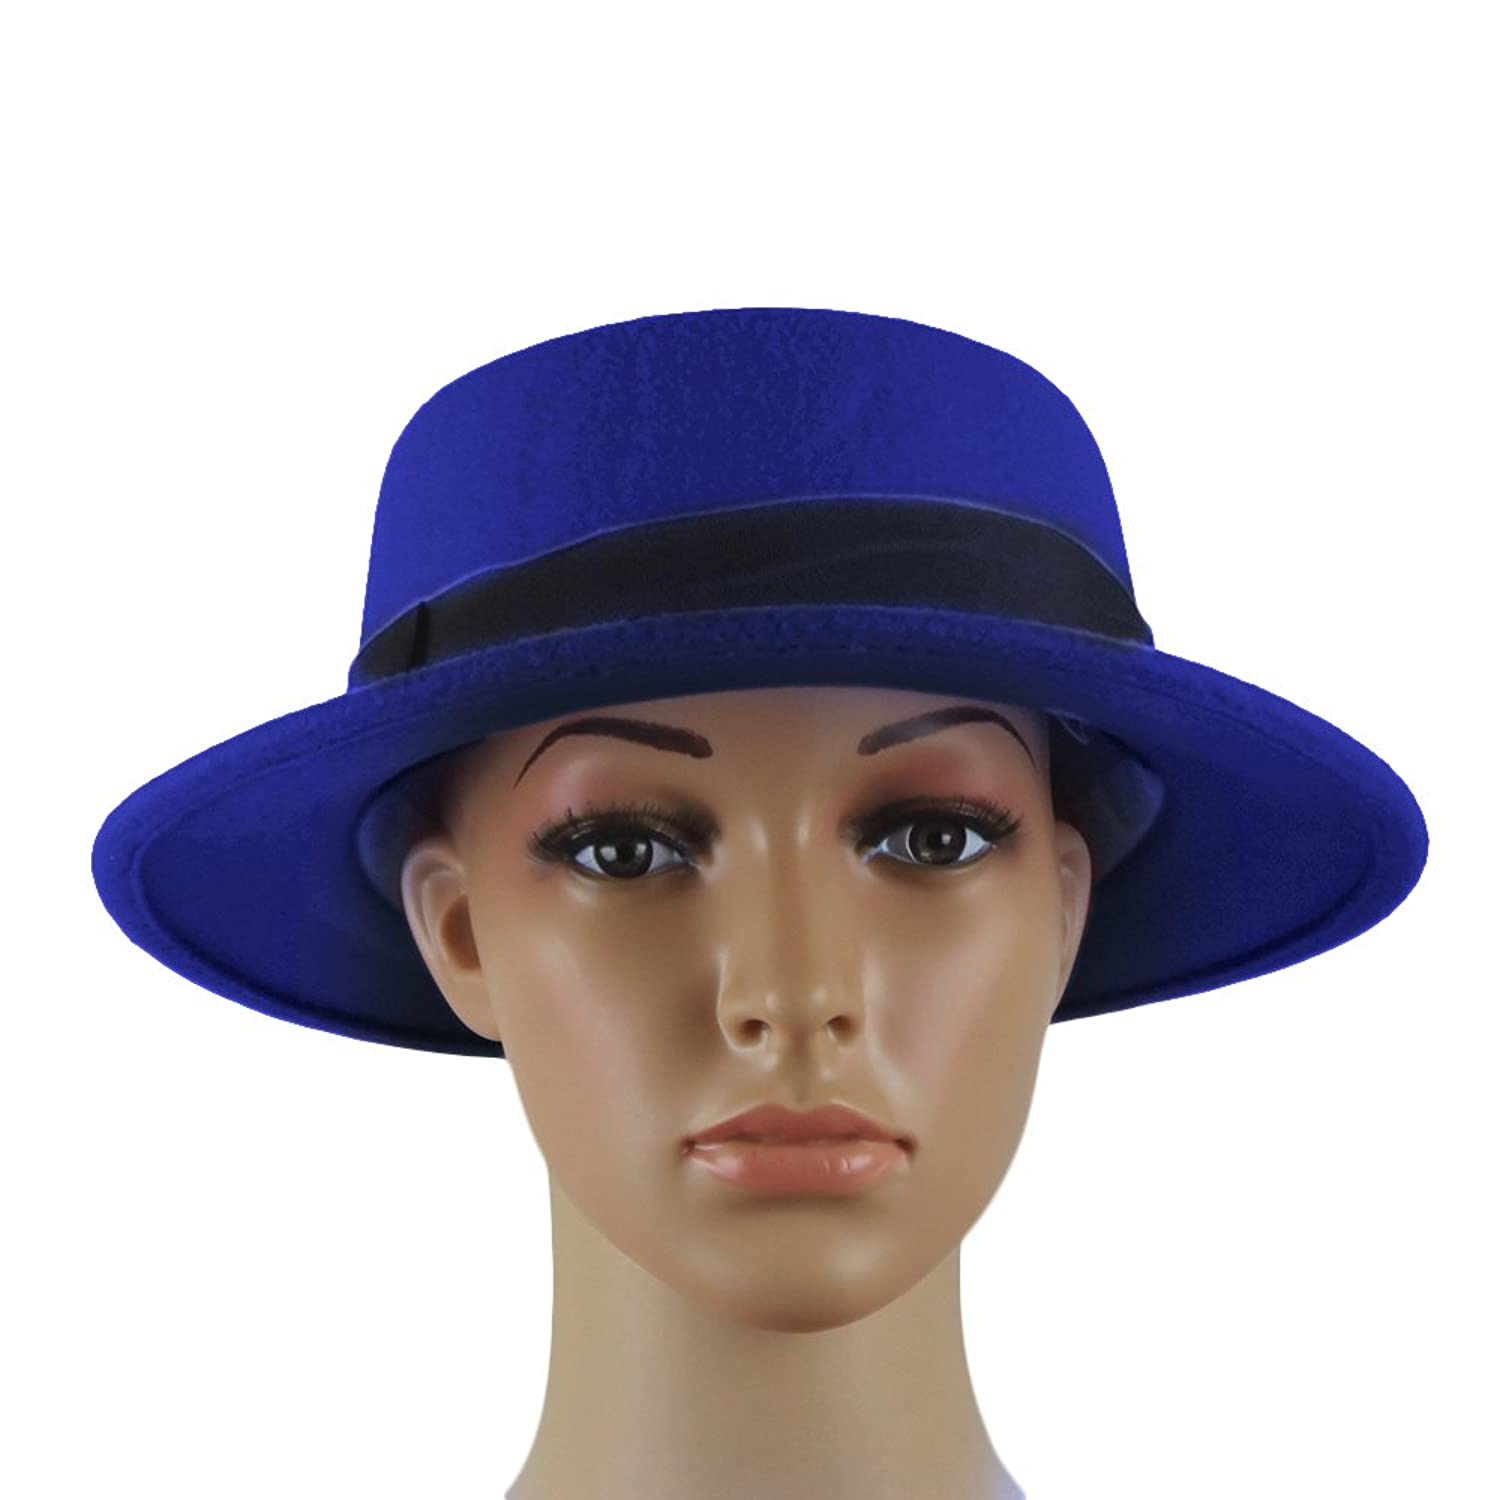 Edwardian Style Hats, Titanic Hats, Derby Hats NE Norboe Womens Brim Fedora Wool Flat Top Hat Church Derby Bowknot Cap $18.99 AT vintagedancer.com